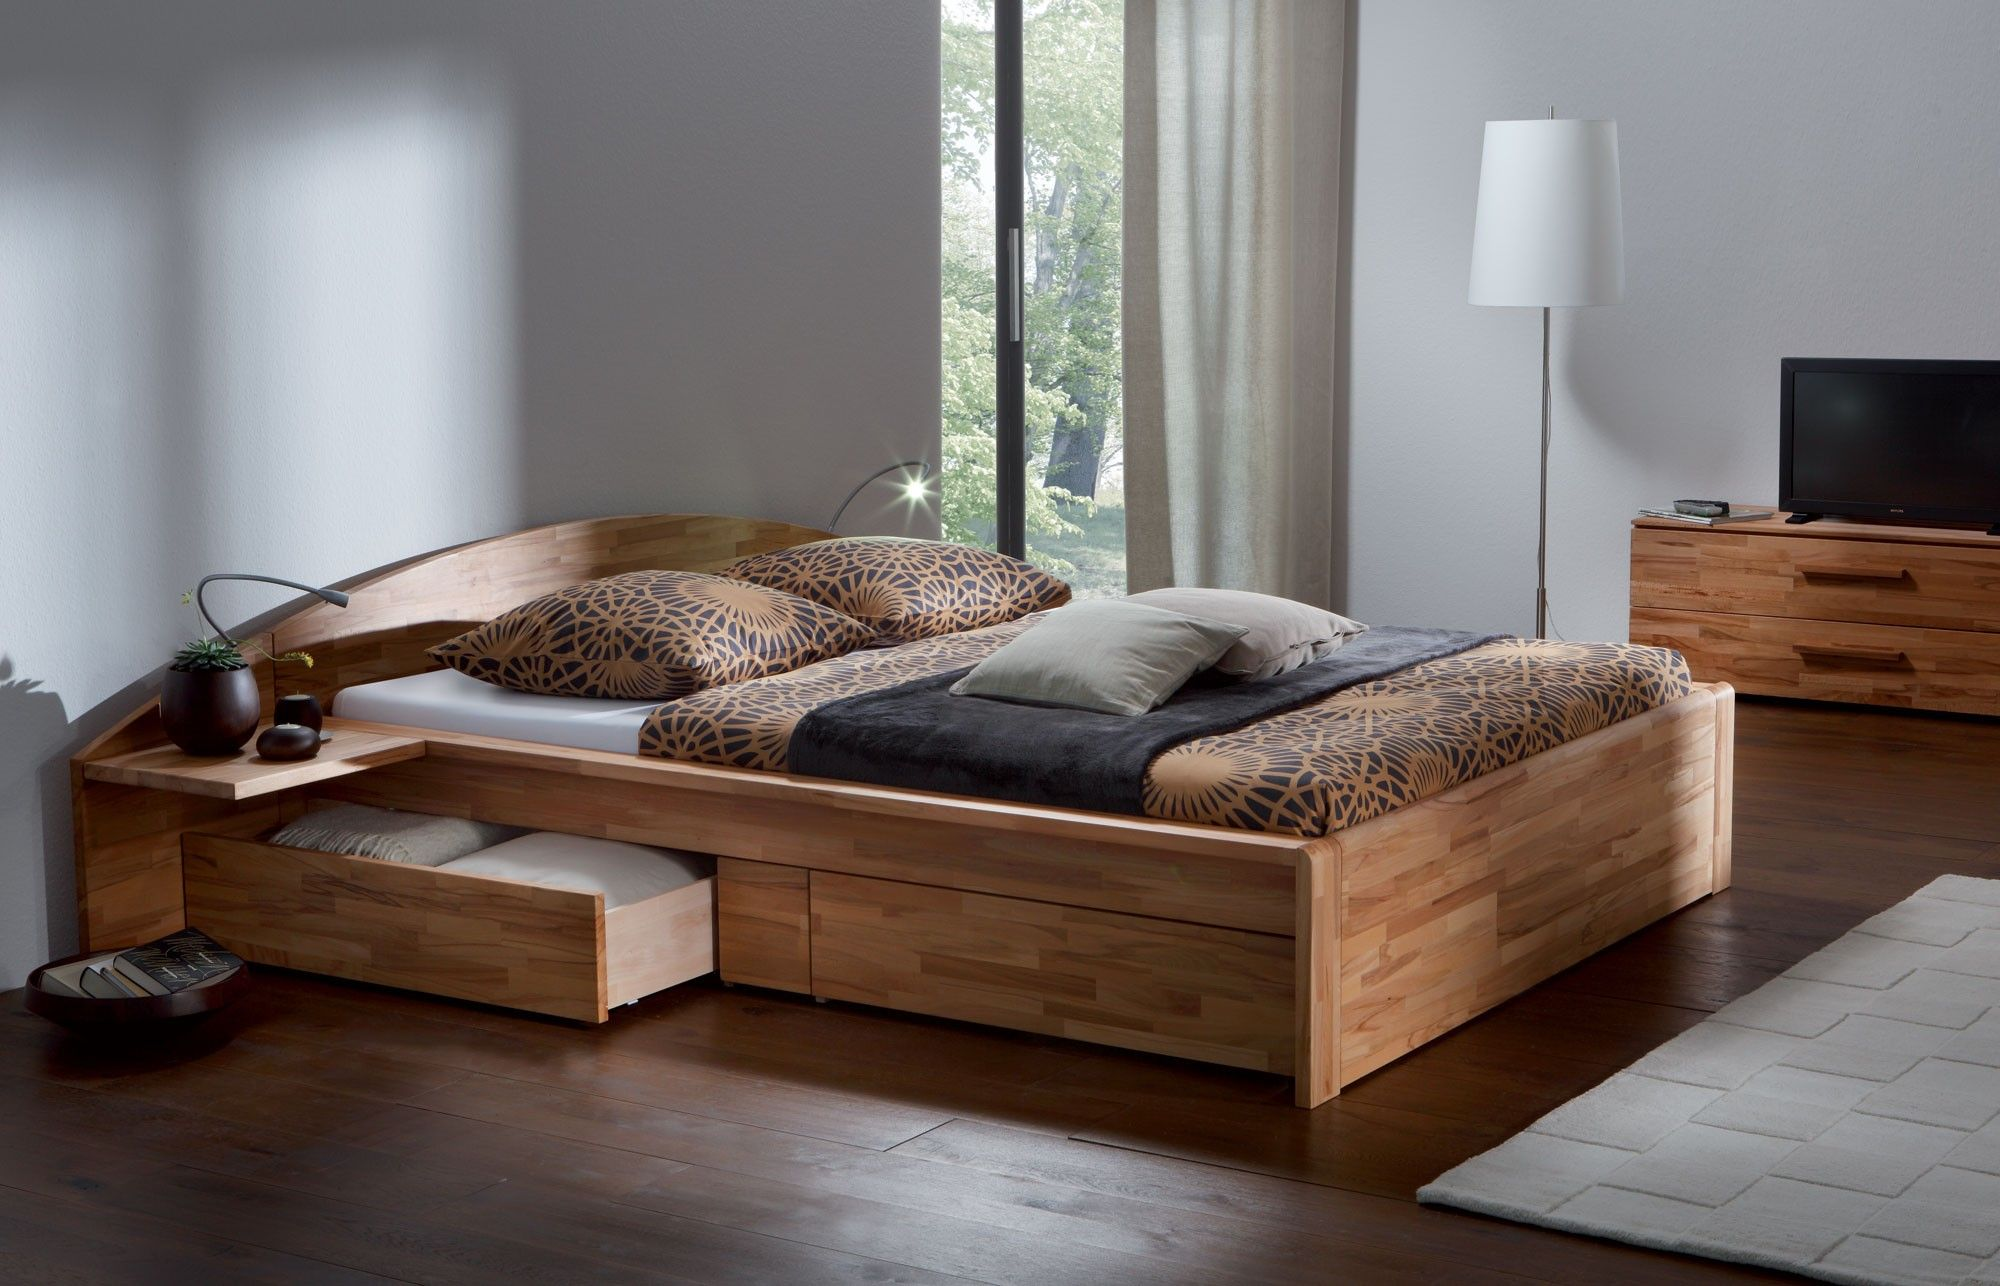 solidheartbeechnaturaloiledsolidwoodenbedjpeg ×  - un polish wooden bed with storage drawer added with media console and standlamp placed on wooden floor as well as mattress for platform bed andhardwood